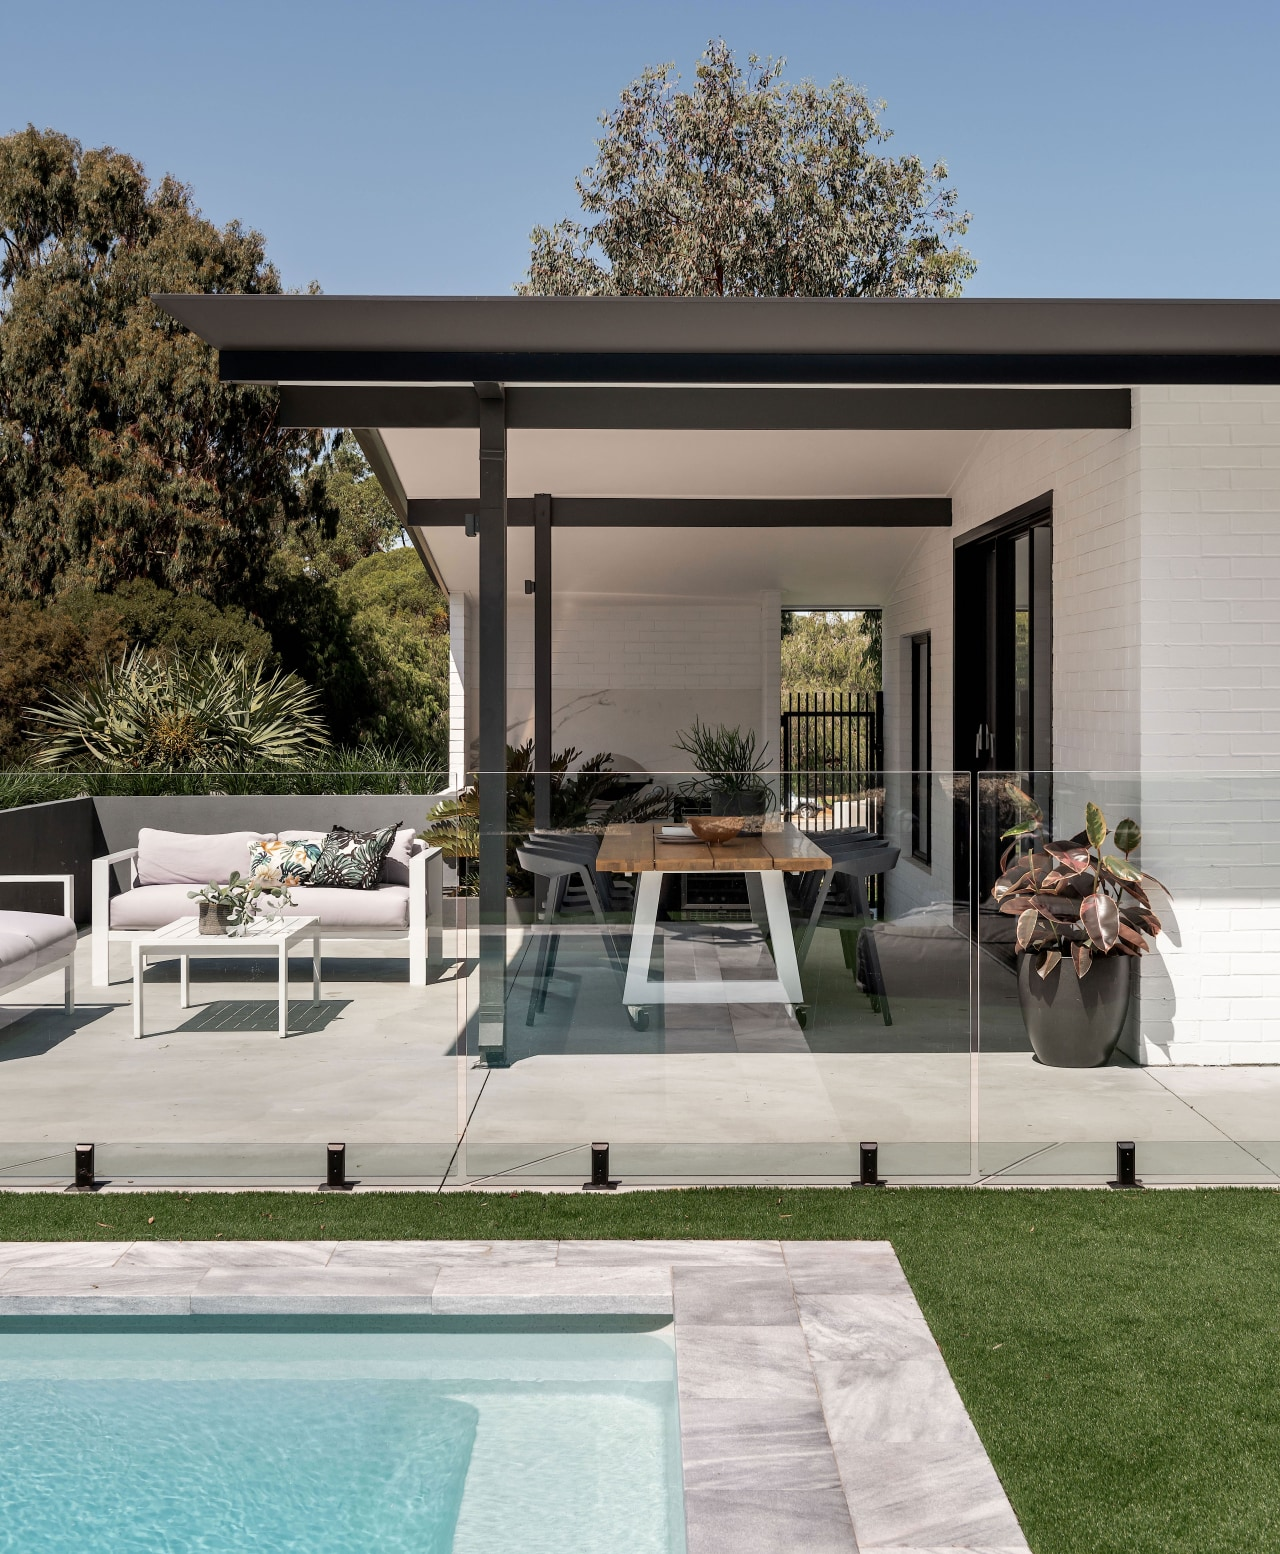 Materials and tones were kept simple, yet striking,